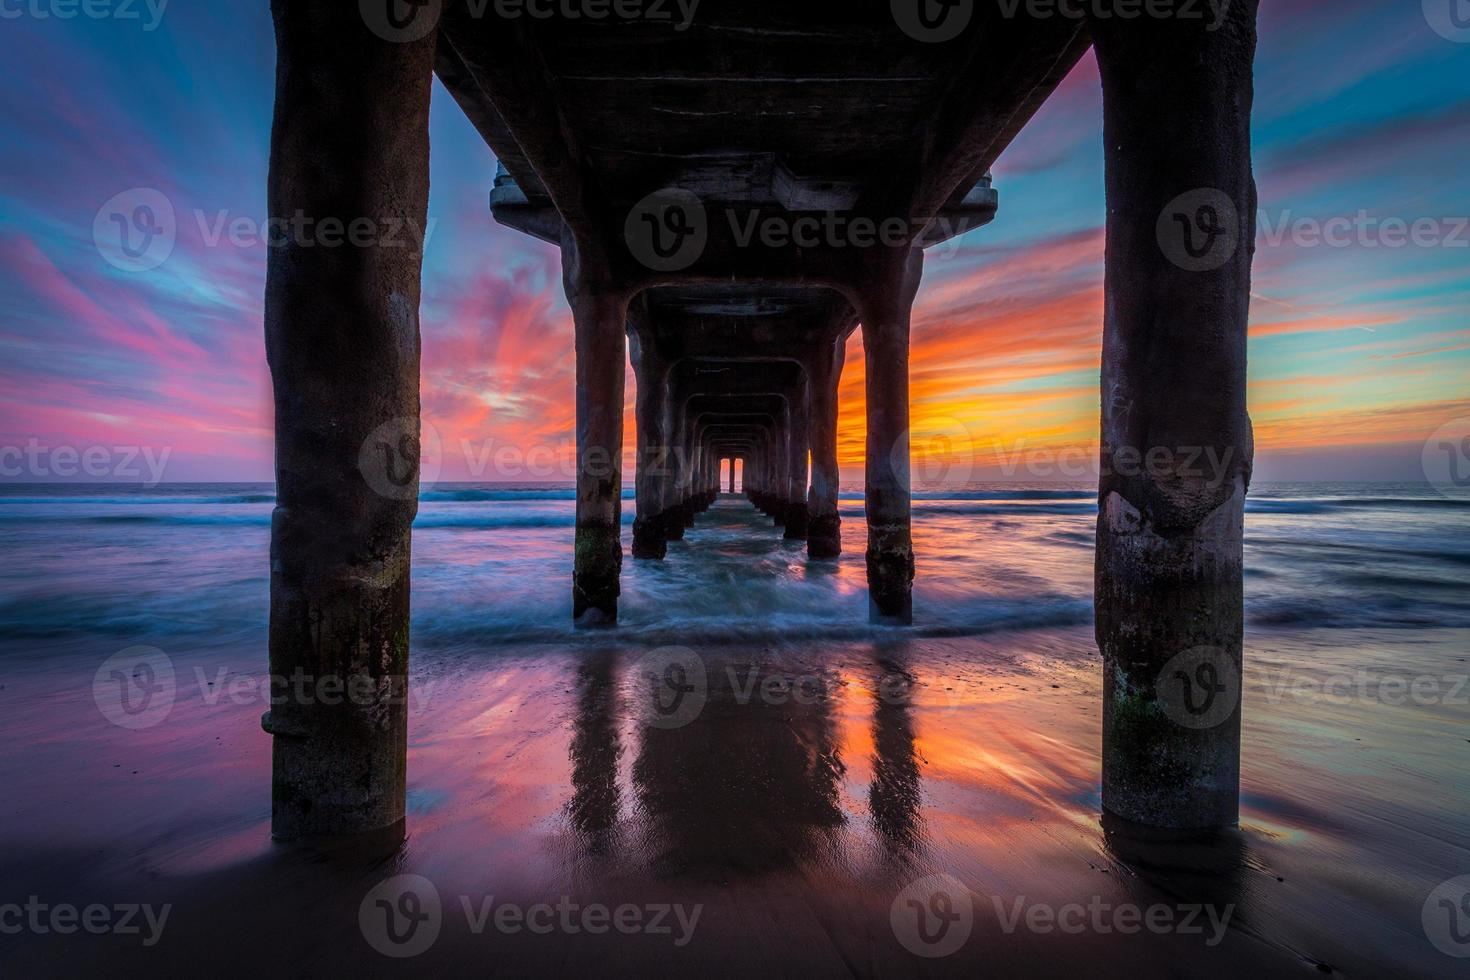 Under a Pier on the Ocean at Sunset photo